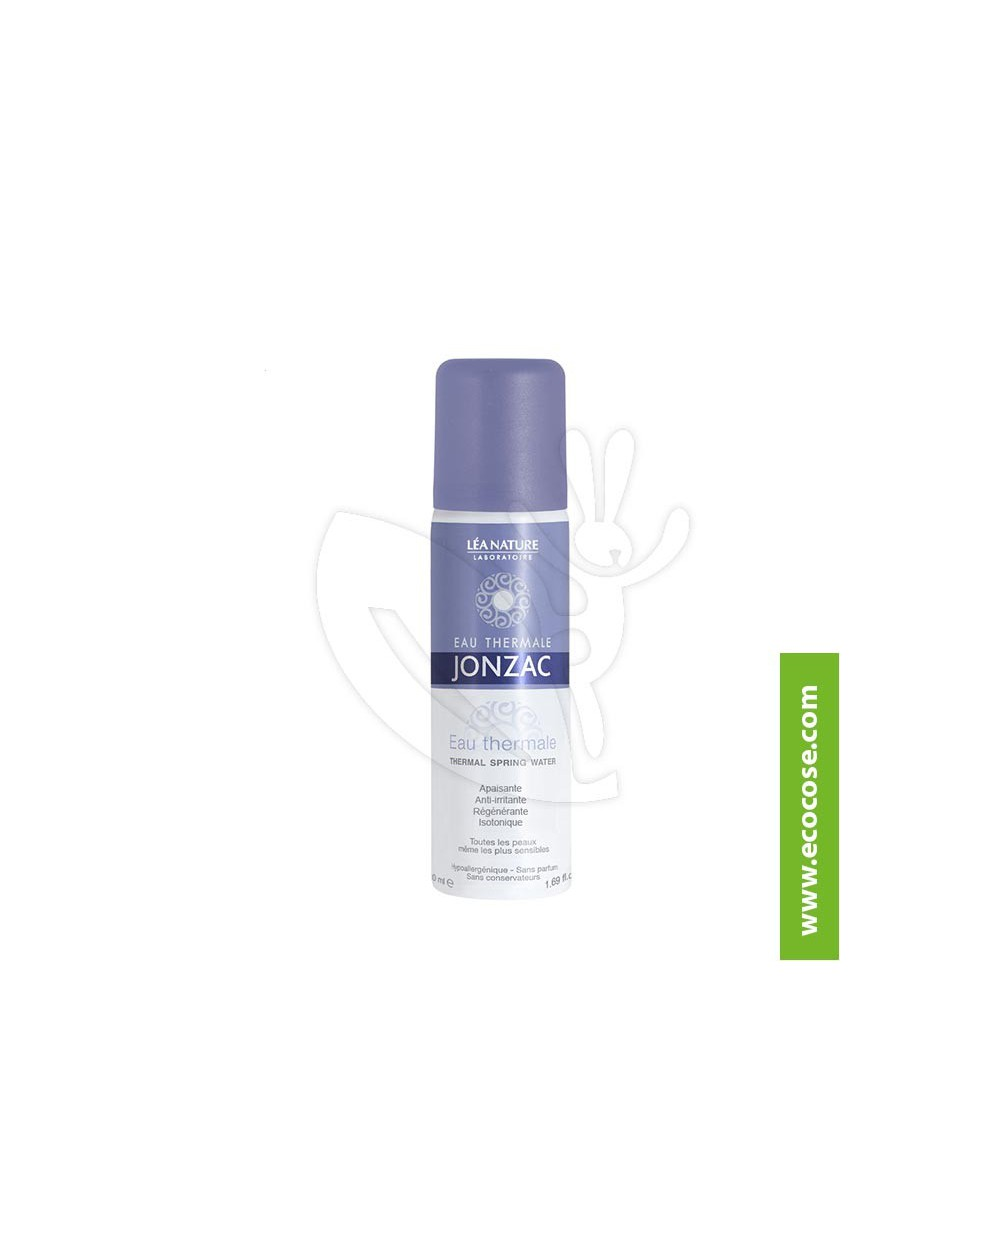 Eau Thermale Jonzac - Acqua termale in spray 50 ml